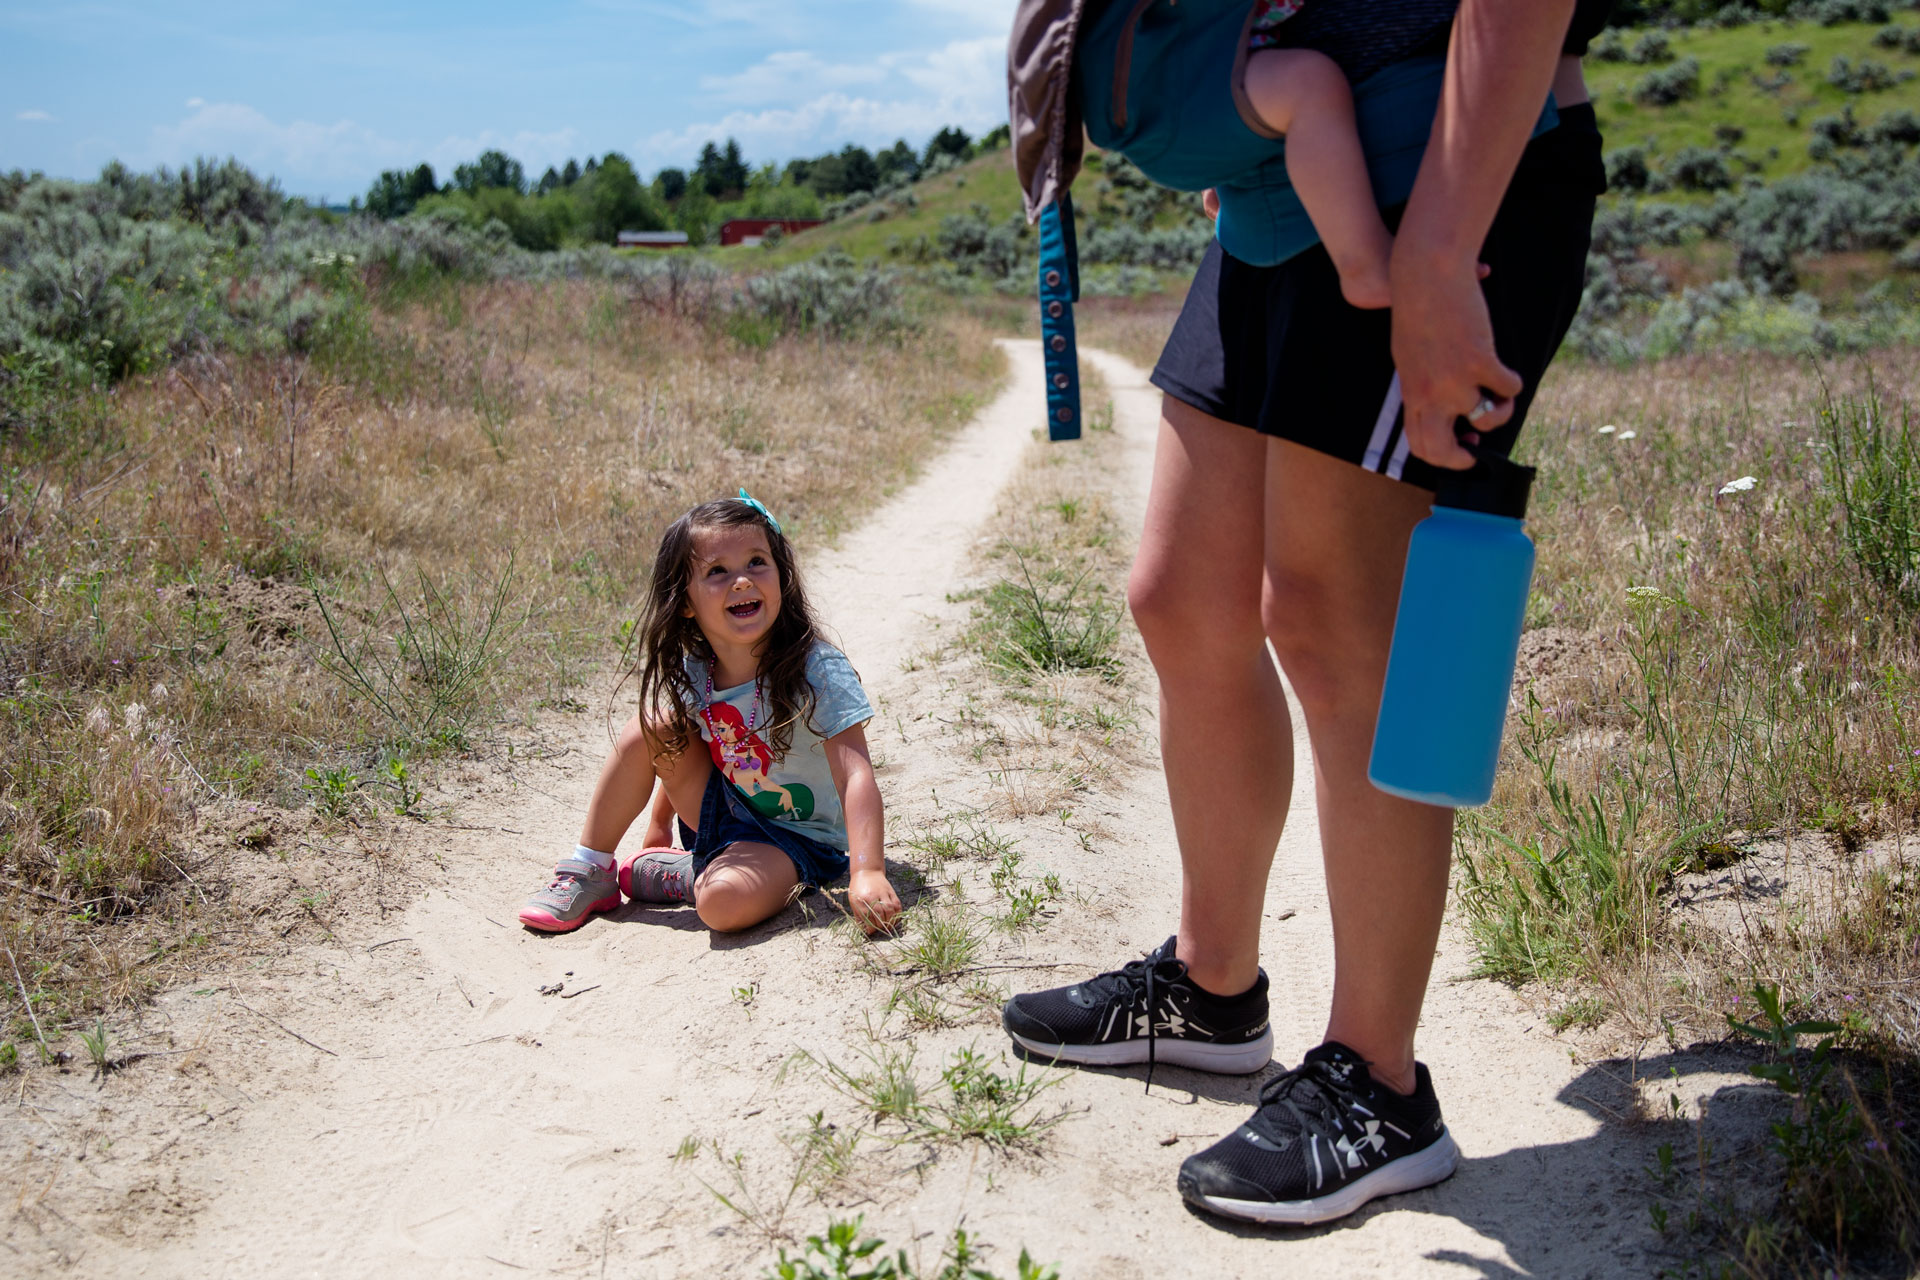 Girl sitting not he ground looking up at mom who is holding her sister in a pack while crying